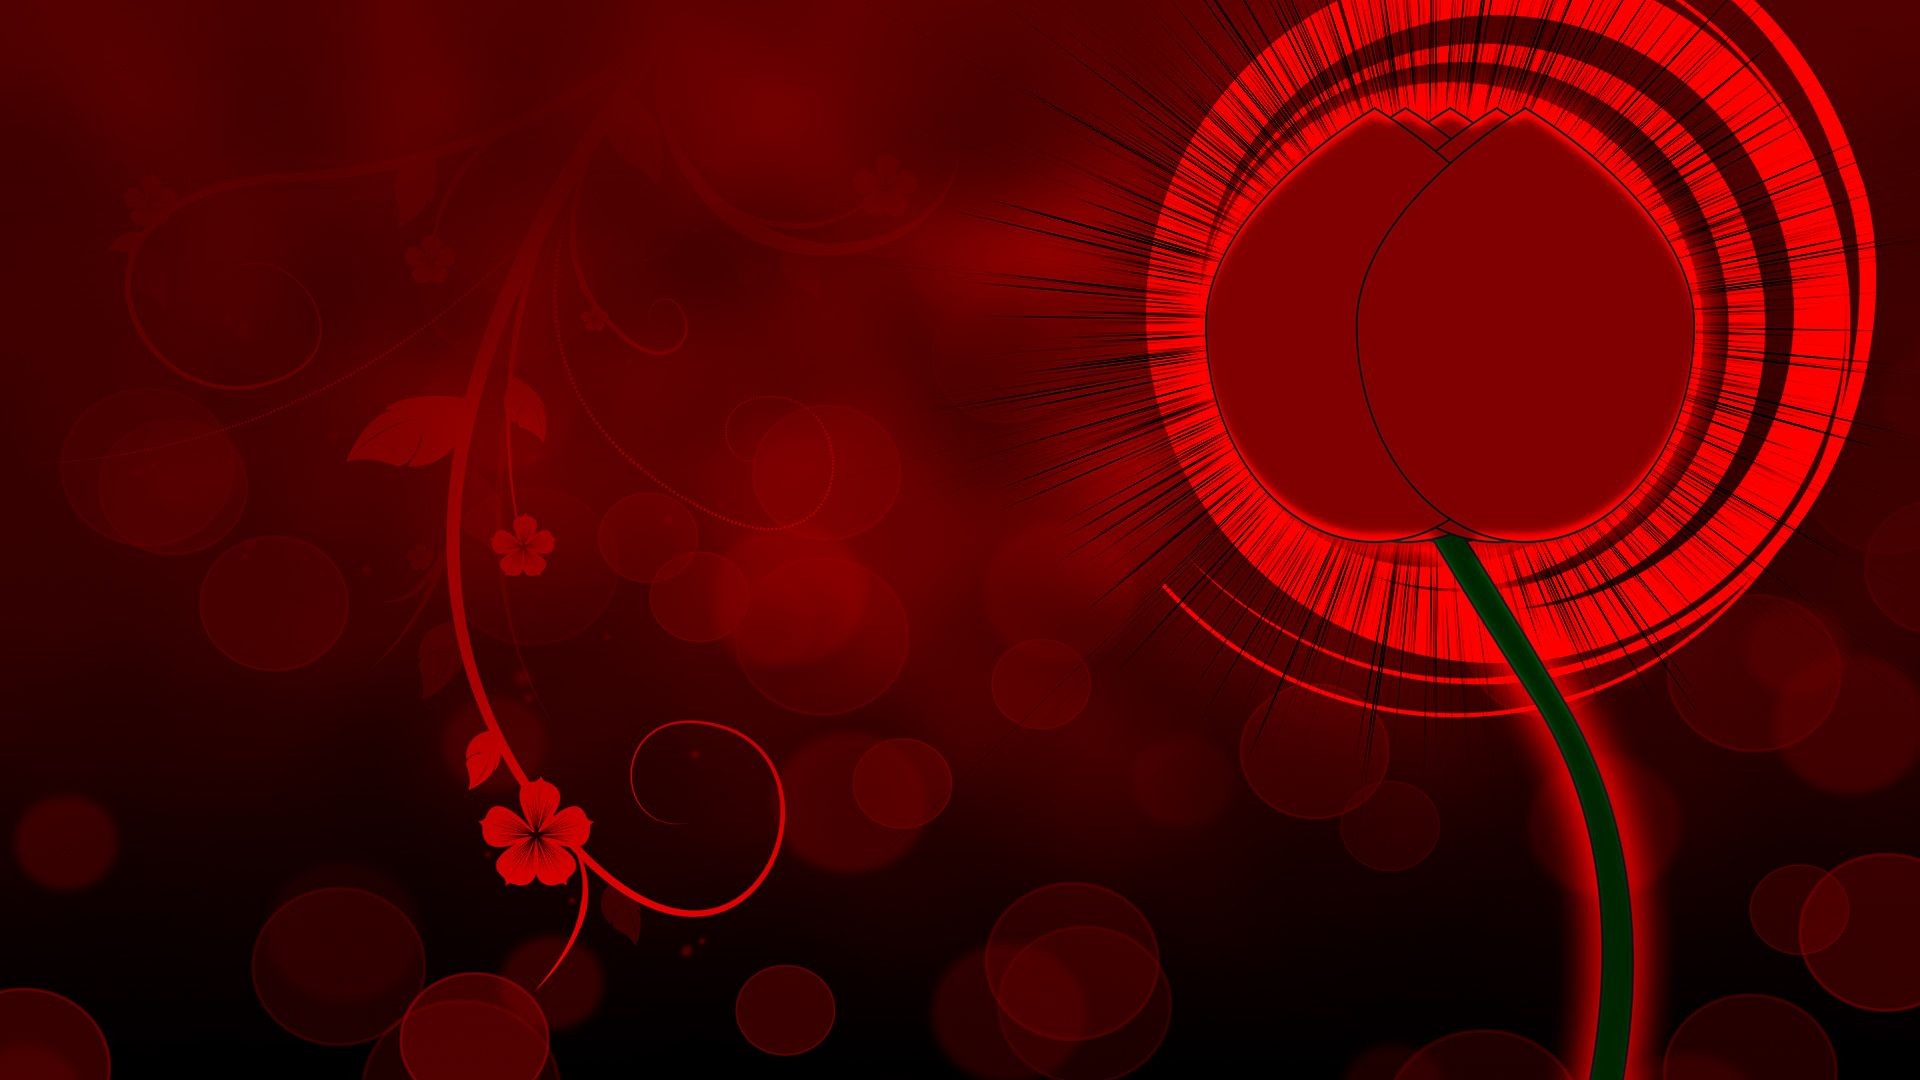 Red Flower wallpapers Red Flower stock photos 1920×1200 Red Flower ...